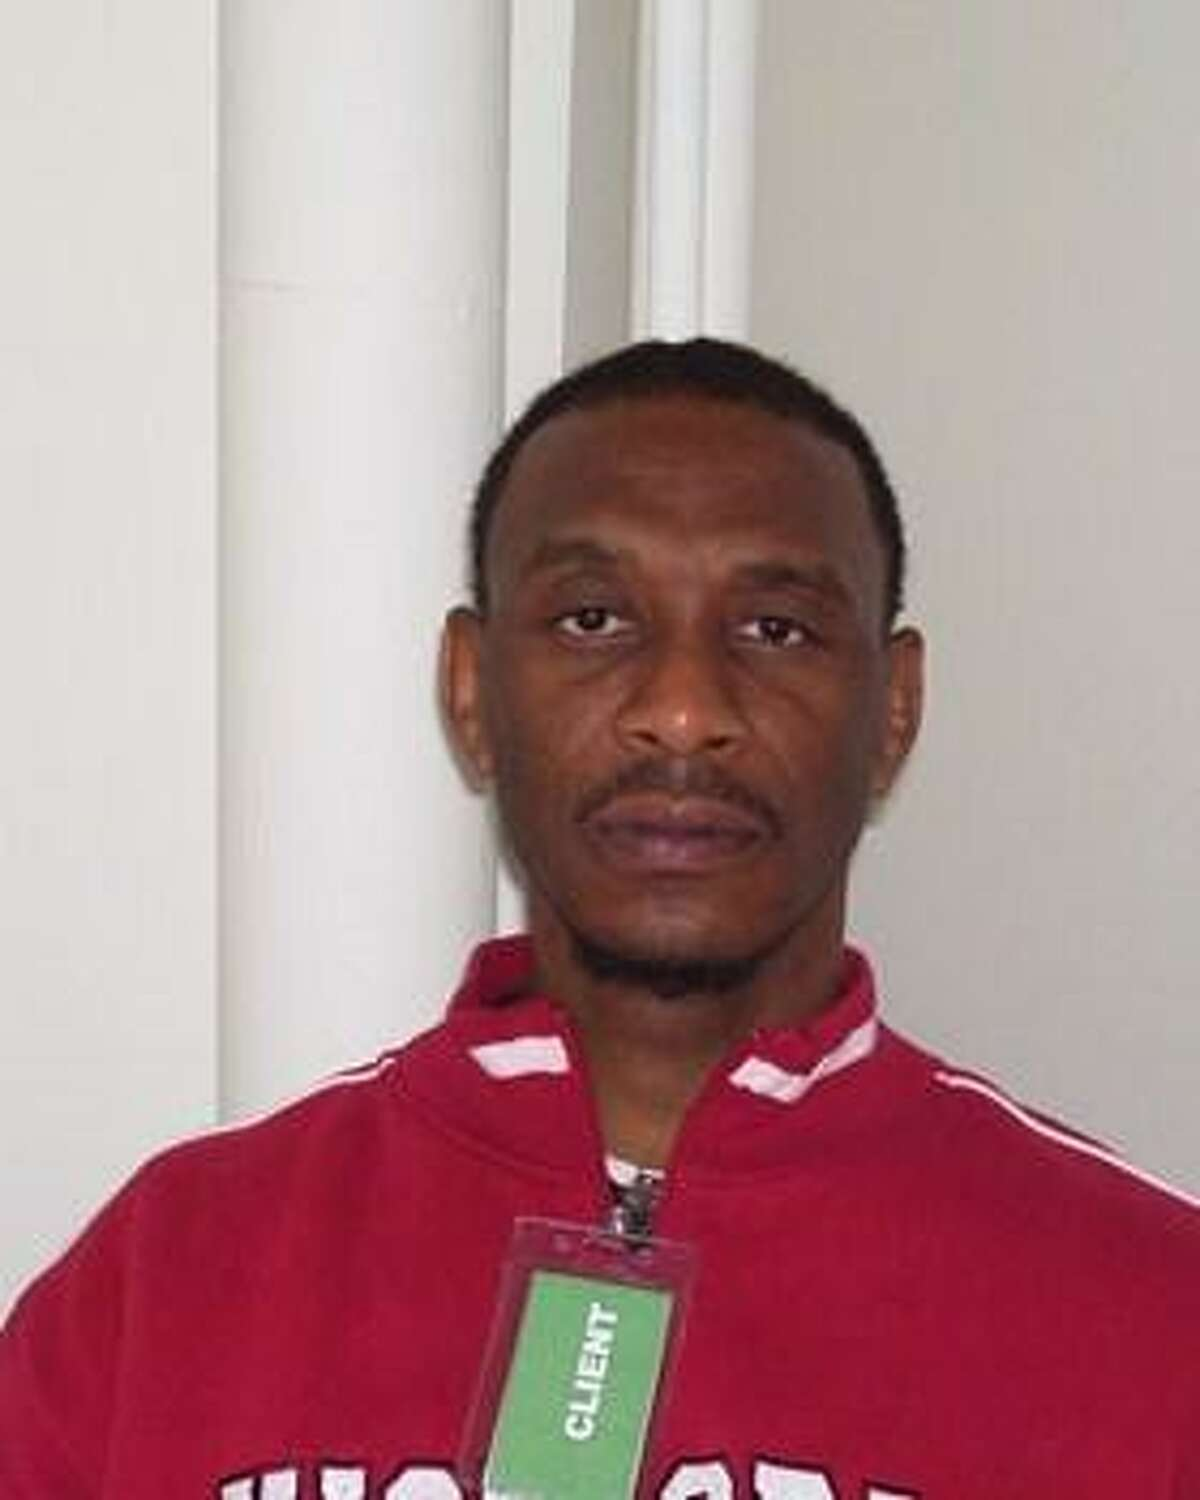 Darin Bolar, pictured here in an October 2009 Department of Corrections photo, is accused of a raping a 14-year-old girl in 2007. The victim's rape kit languished untested for 10 years.